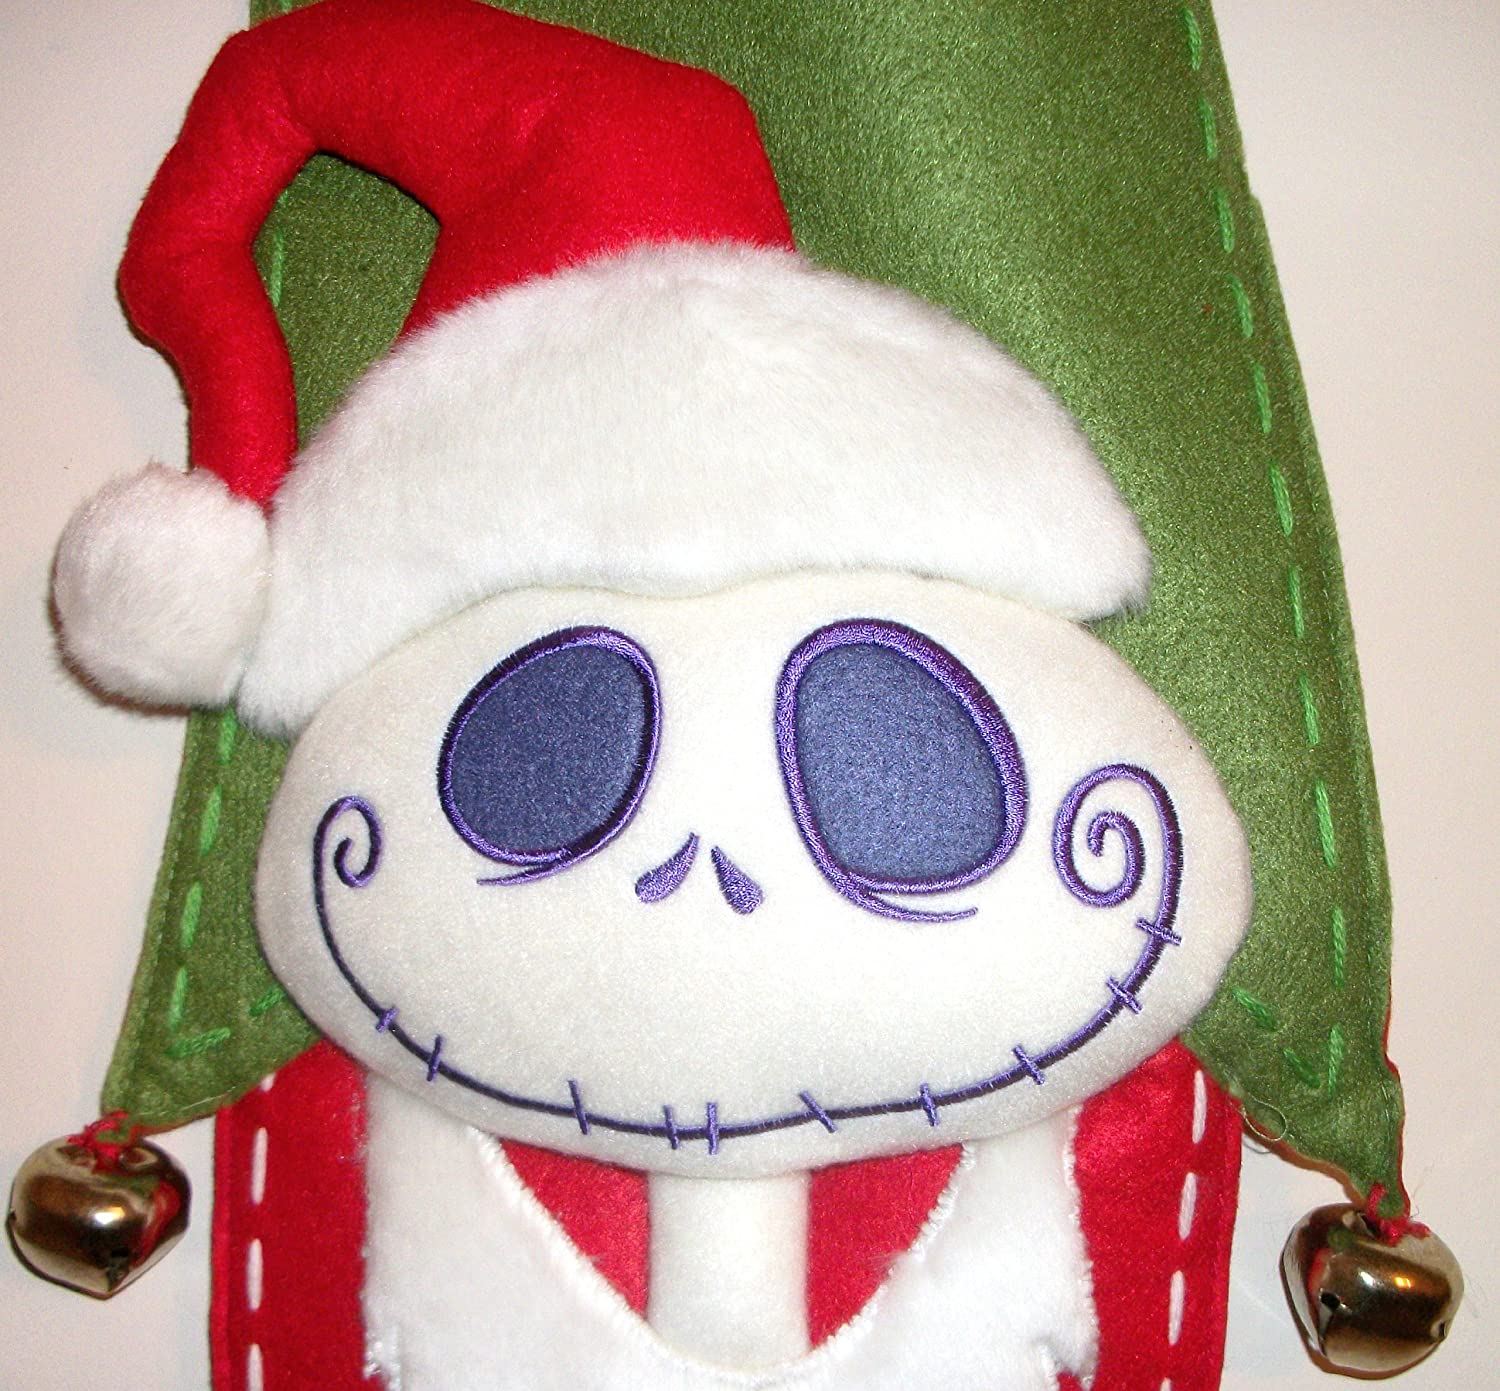 Nightmare Before Christmas Door Decorations  from images-na.ssl-images-amazon.com